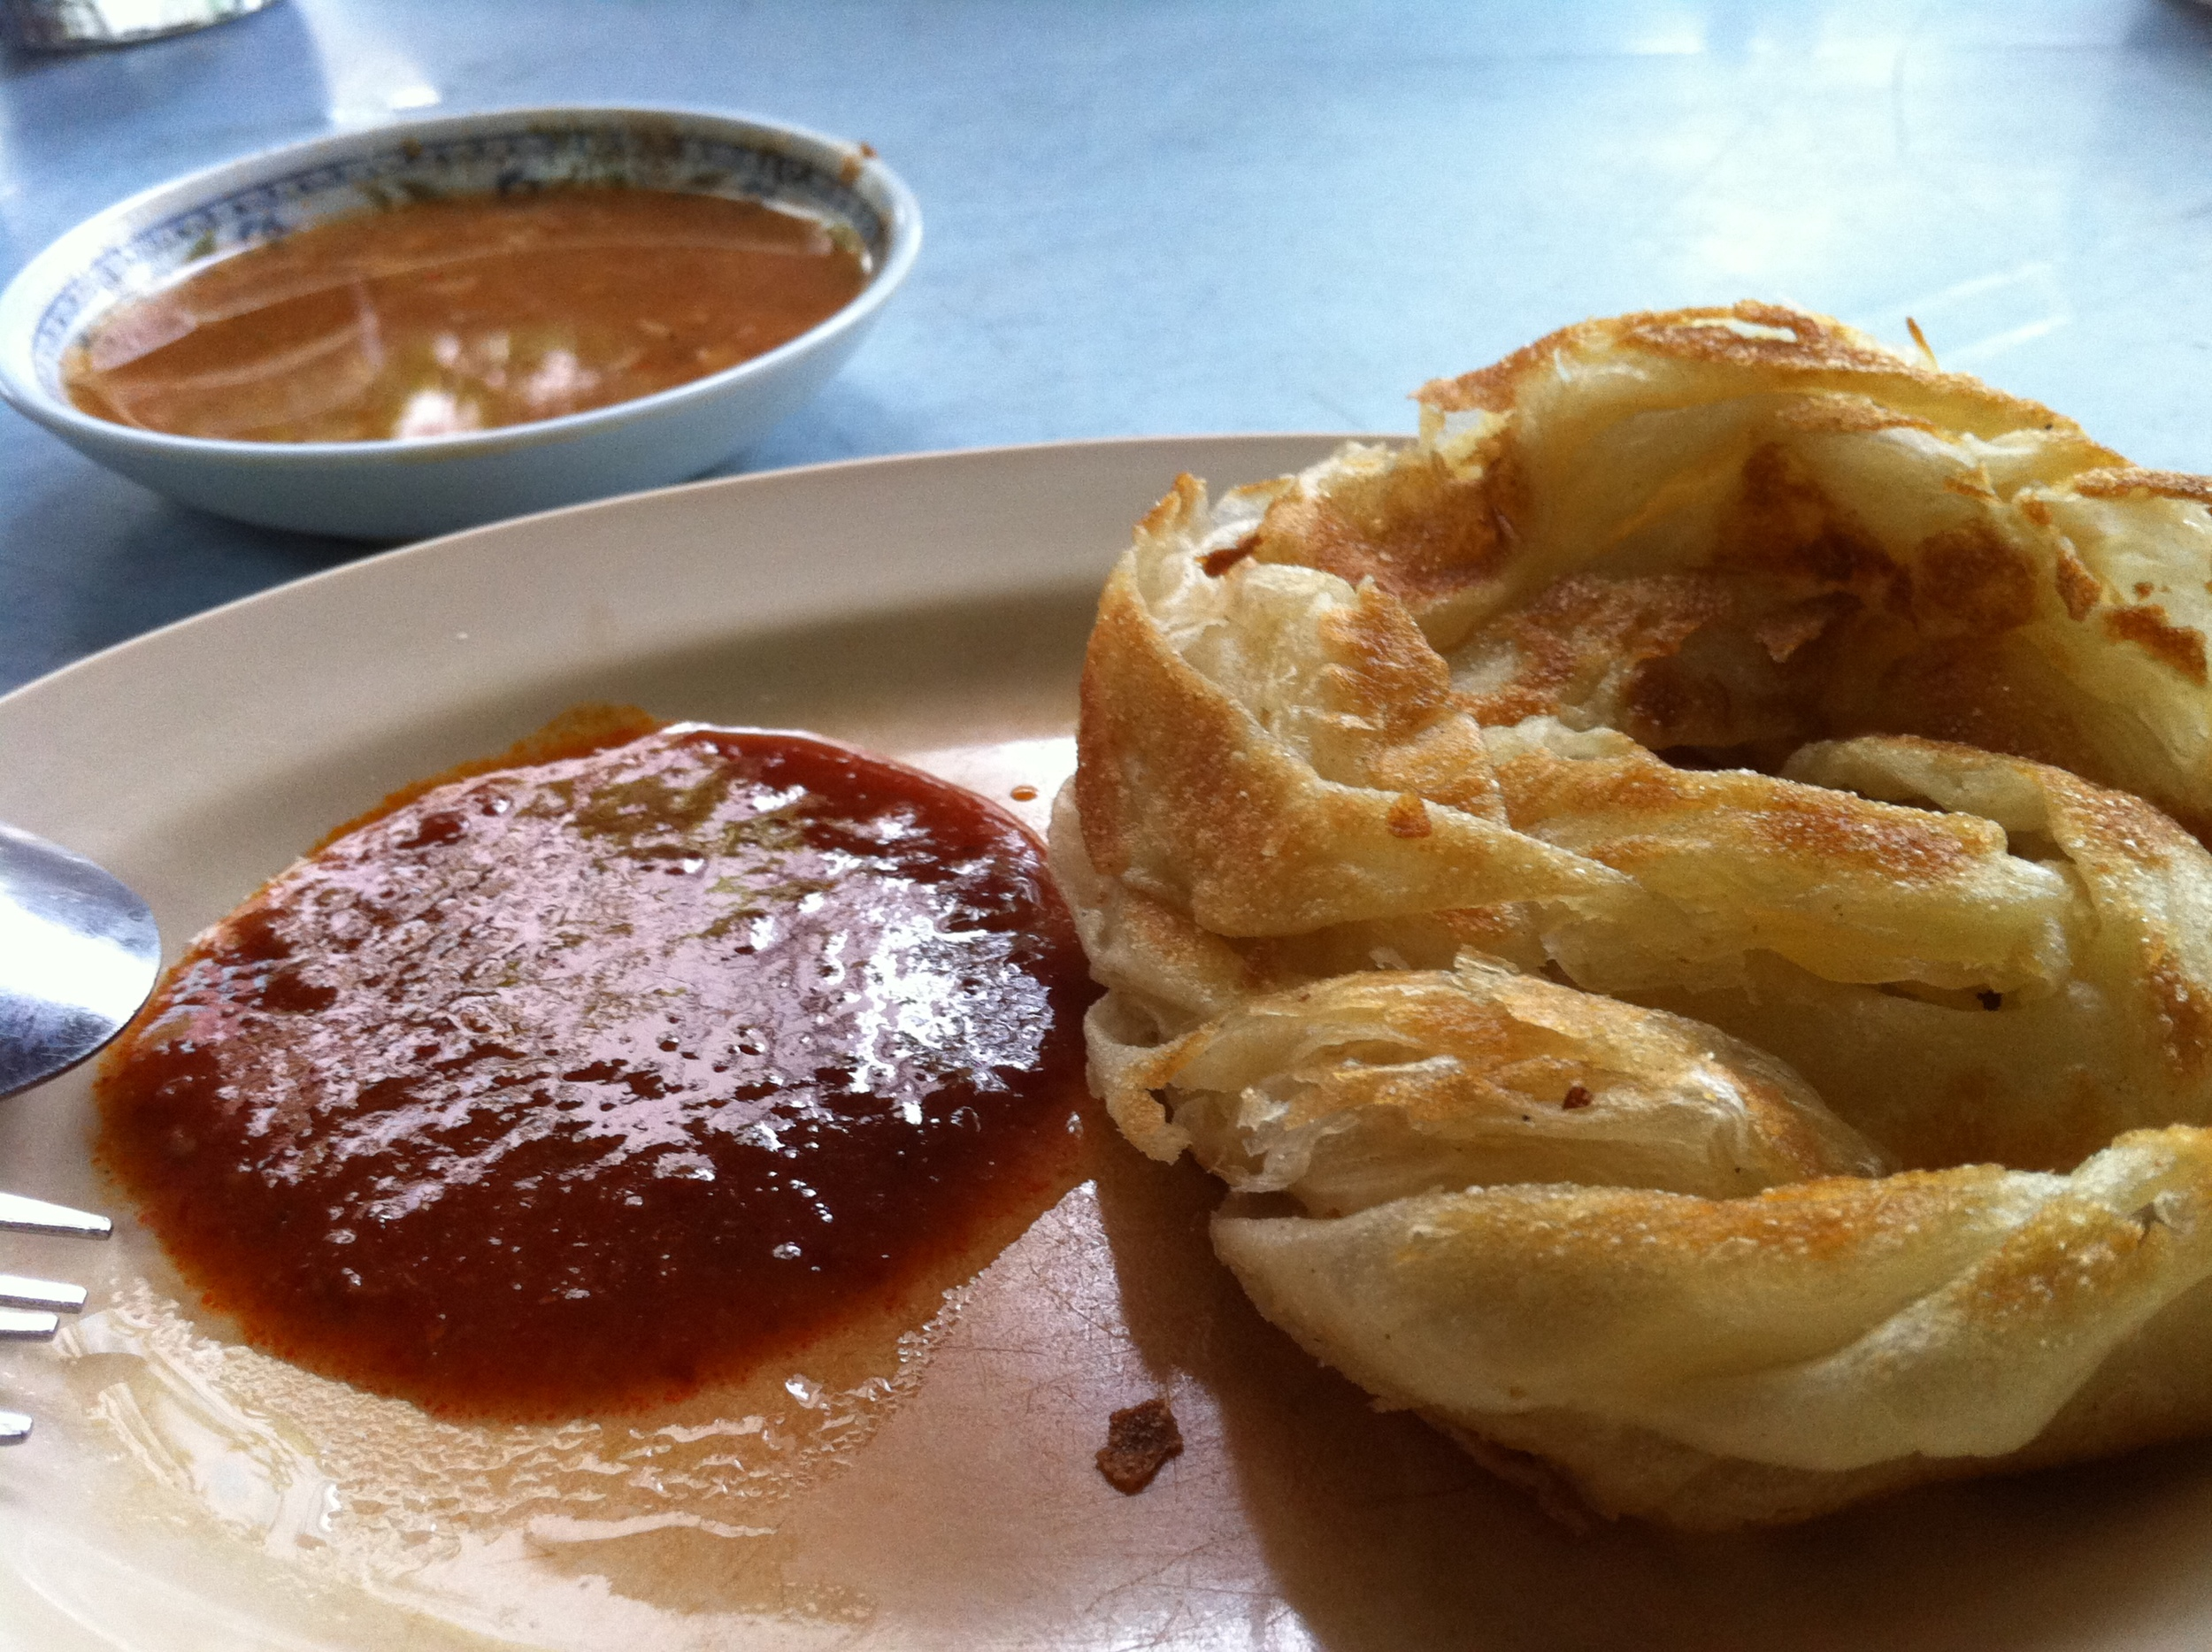 Roti canai (fried bread/pancake): Roti Canai Bukit Chagar: Junction of Jalan Bukit Chagar and Jalan Ungku Aziz (next to Pine View Apartments and PDRM Apartments)